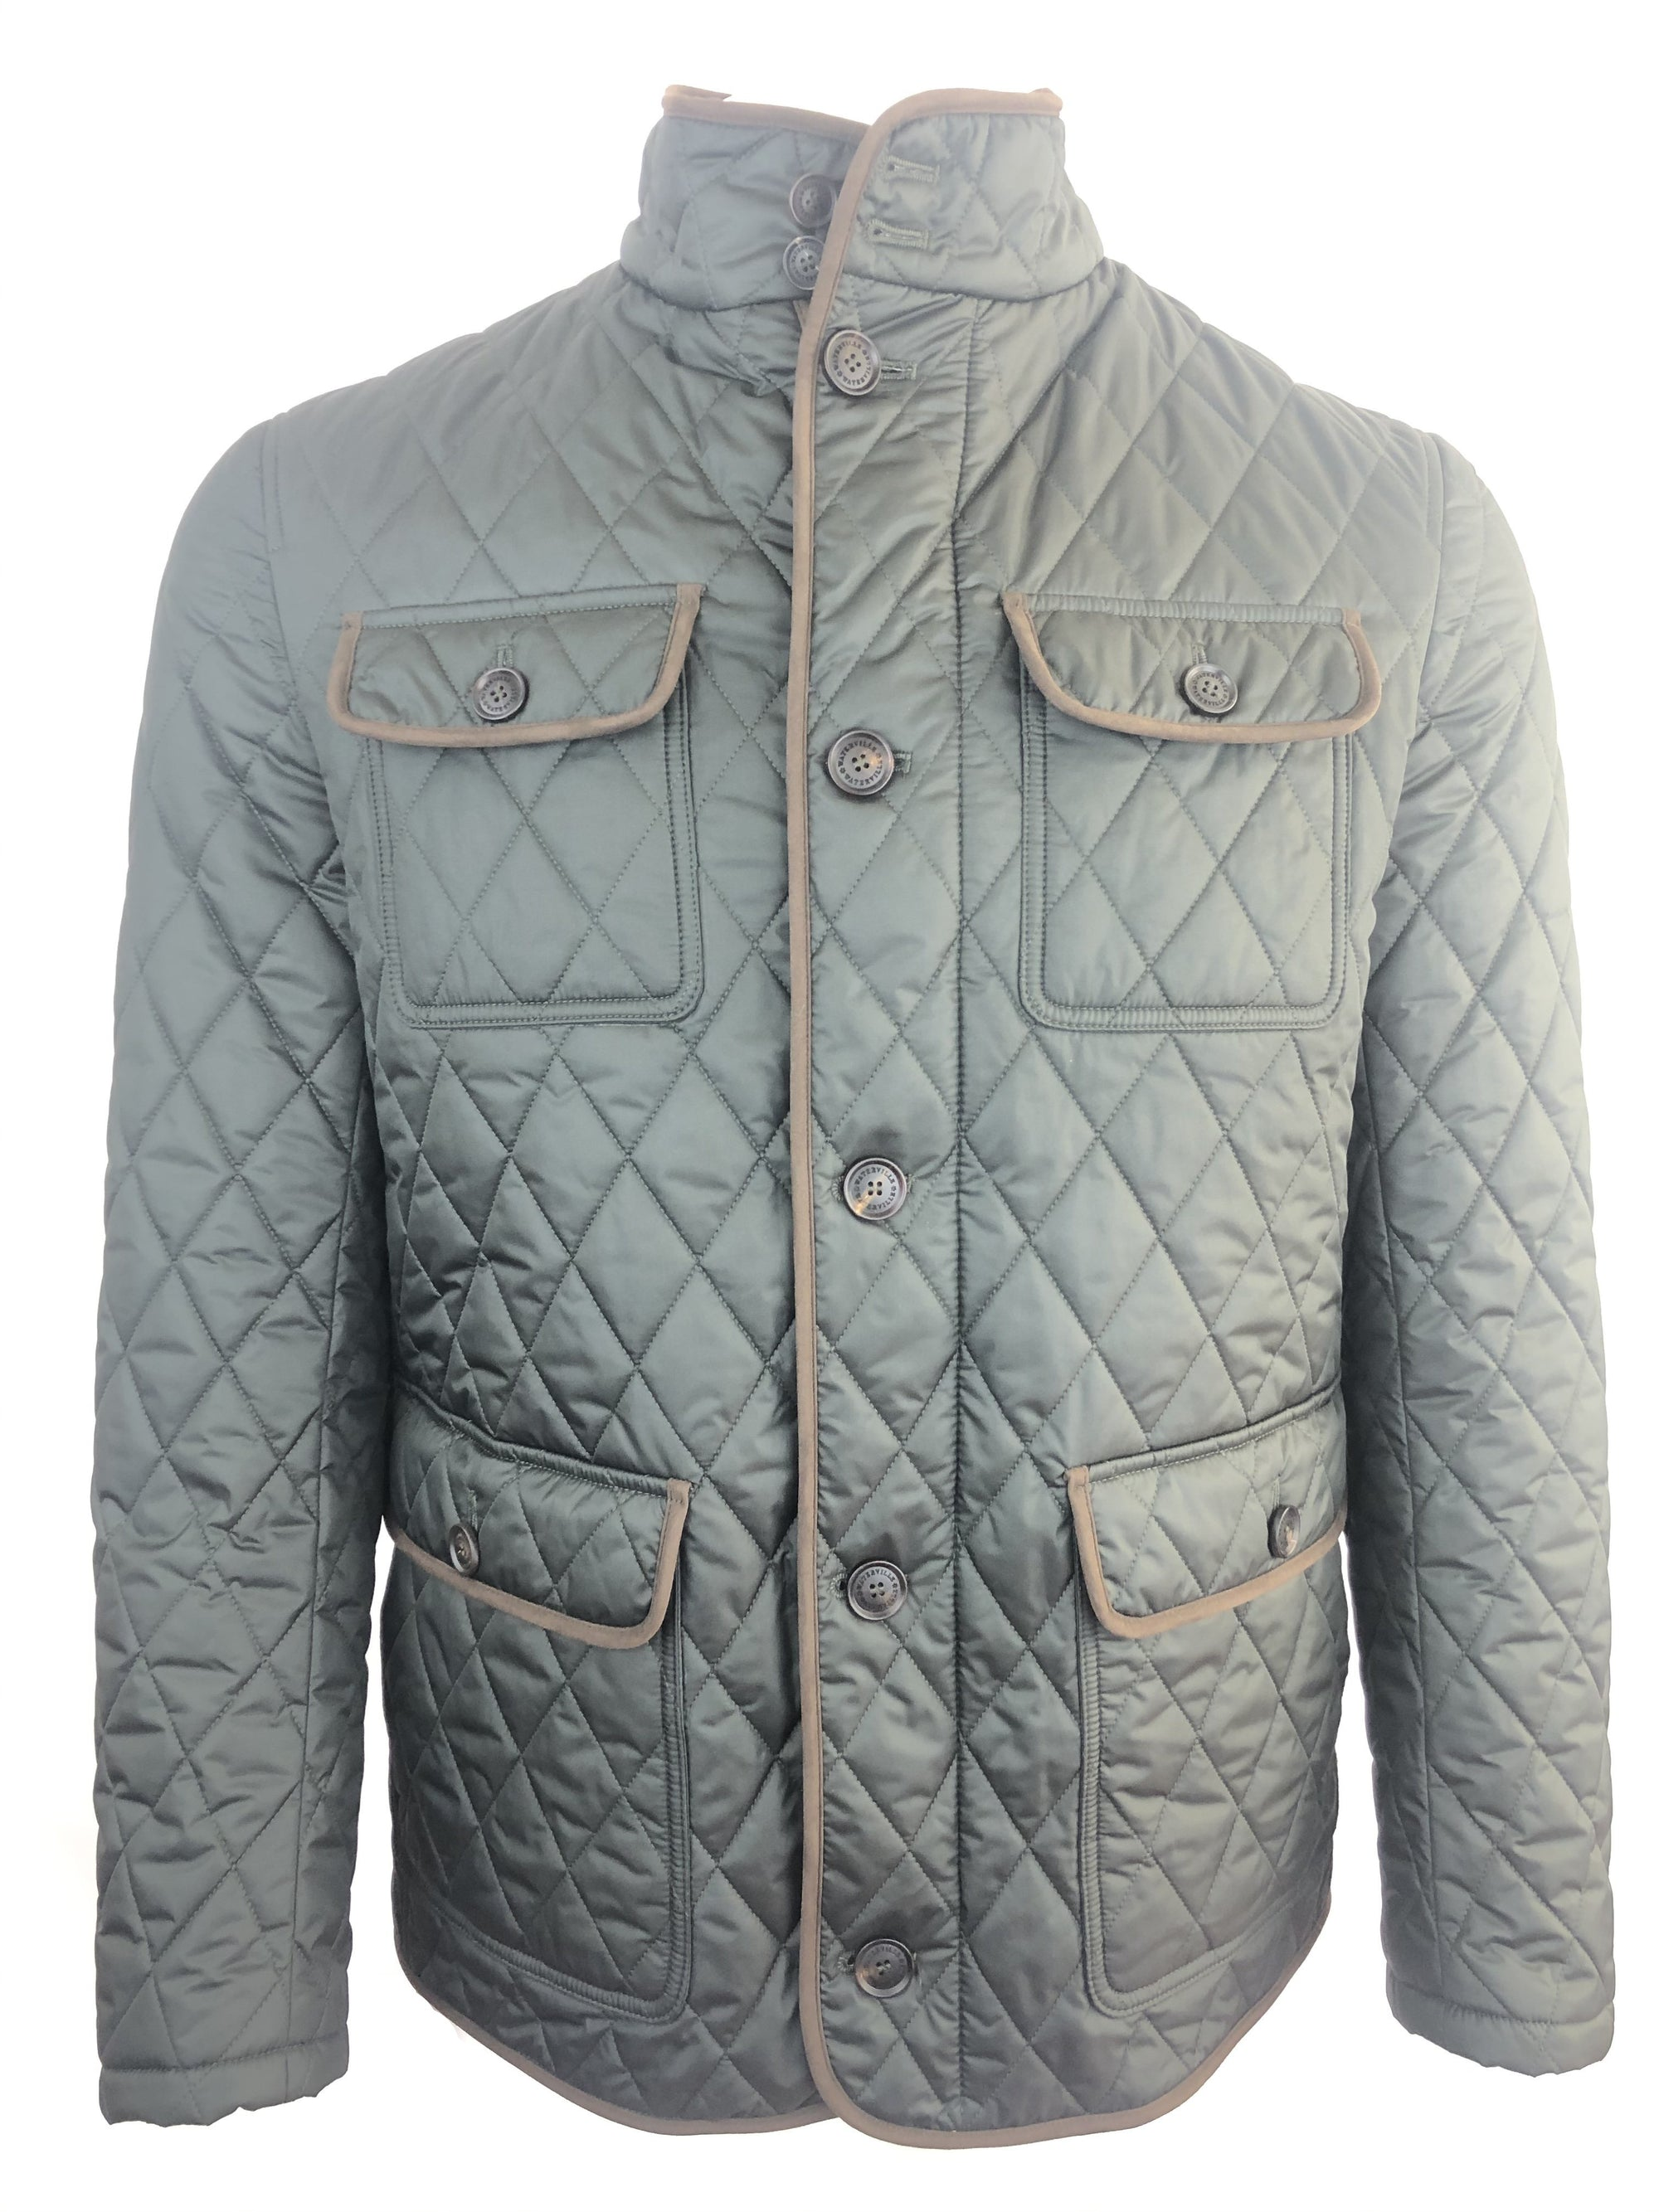 WATERVILLE QUILTED FIELD JACKET IN OLIVE GREEN WITH SUEDE TRIM